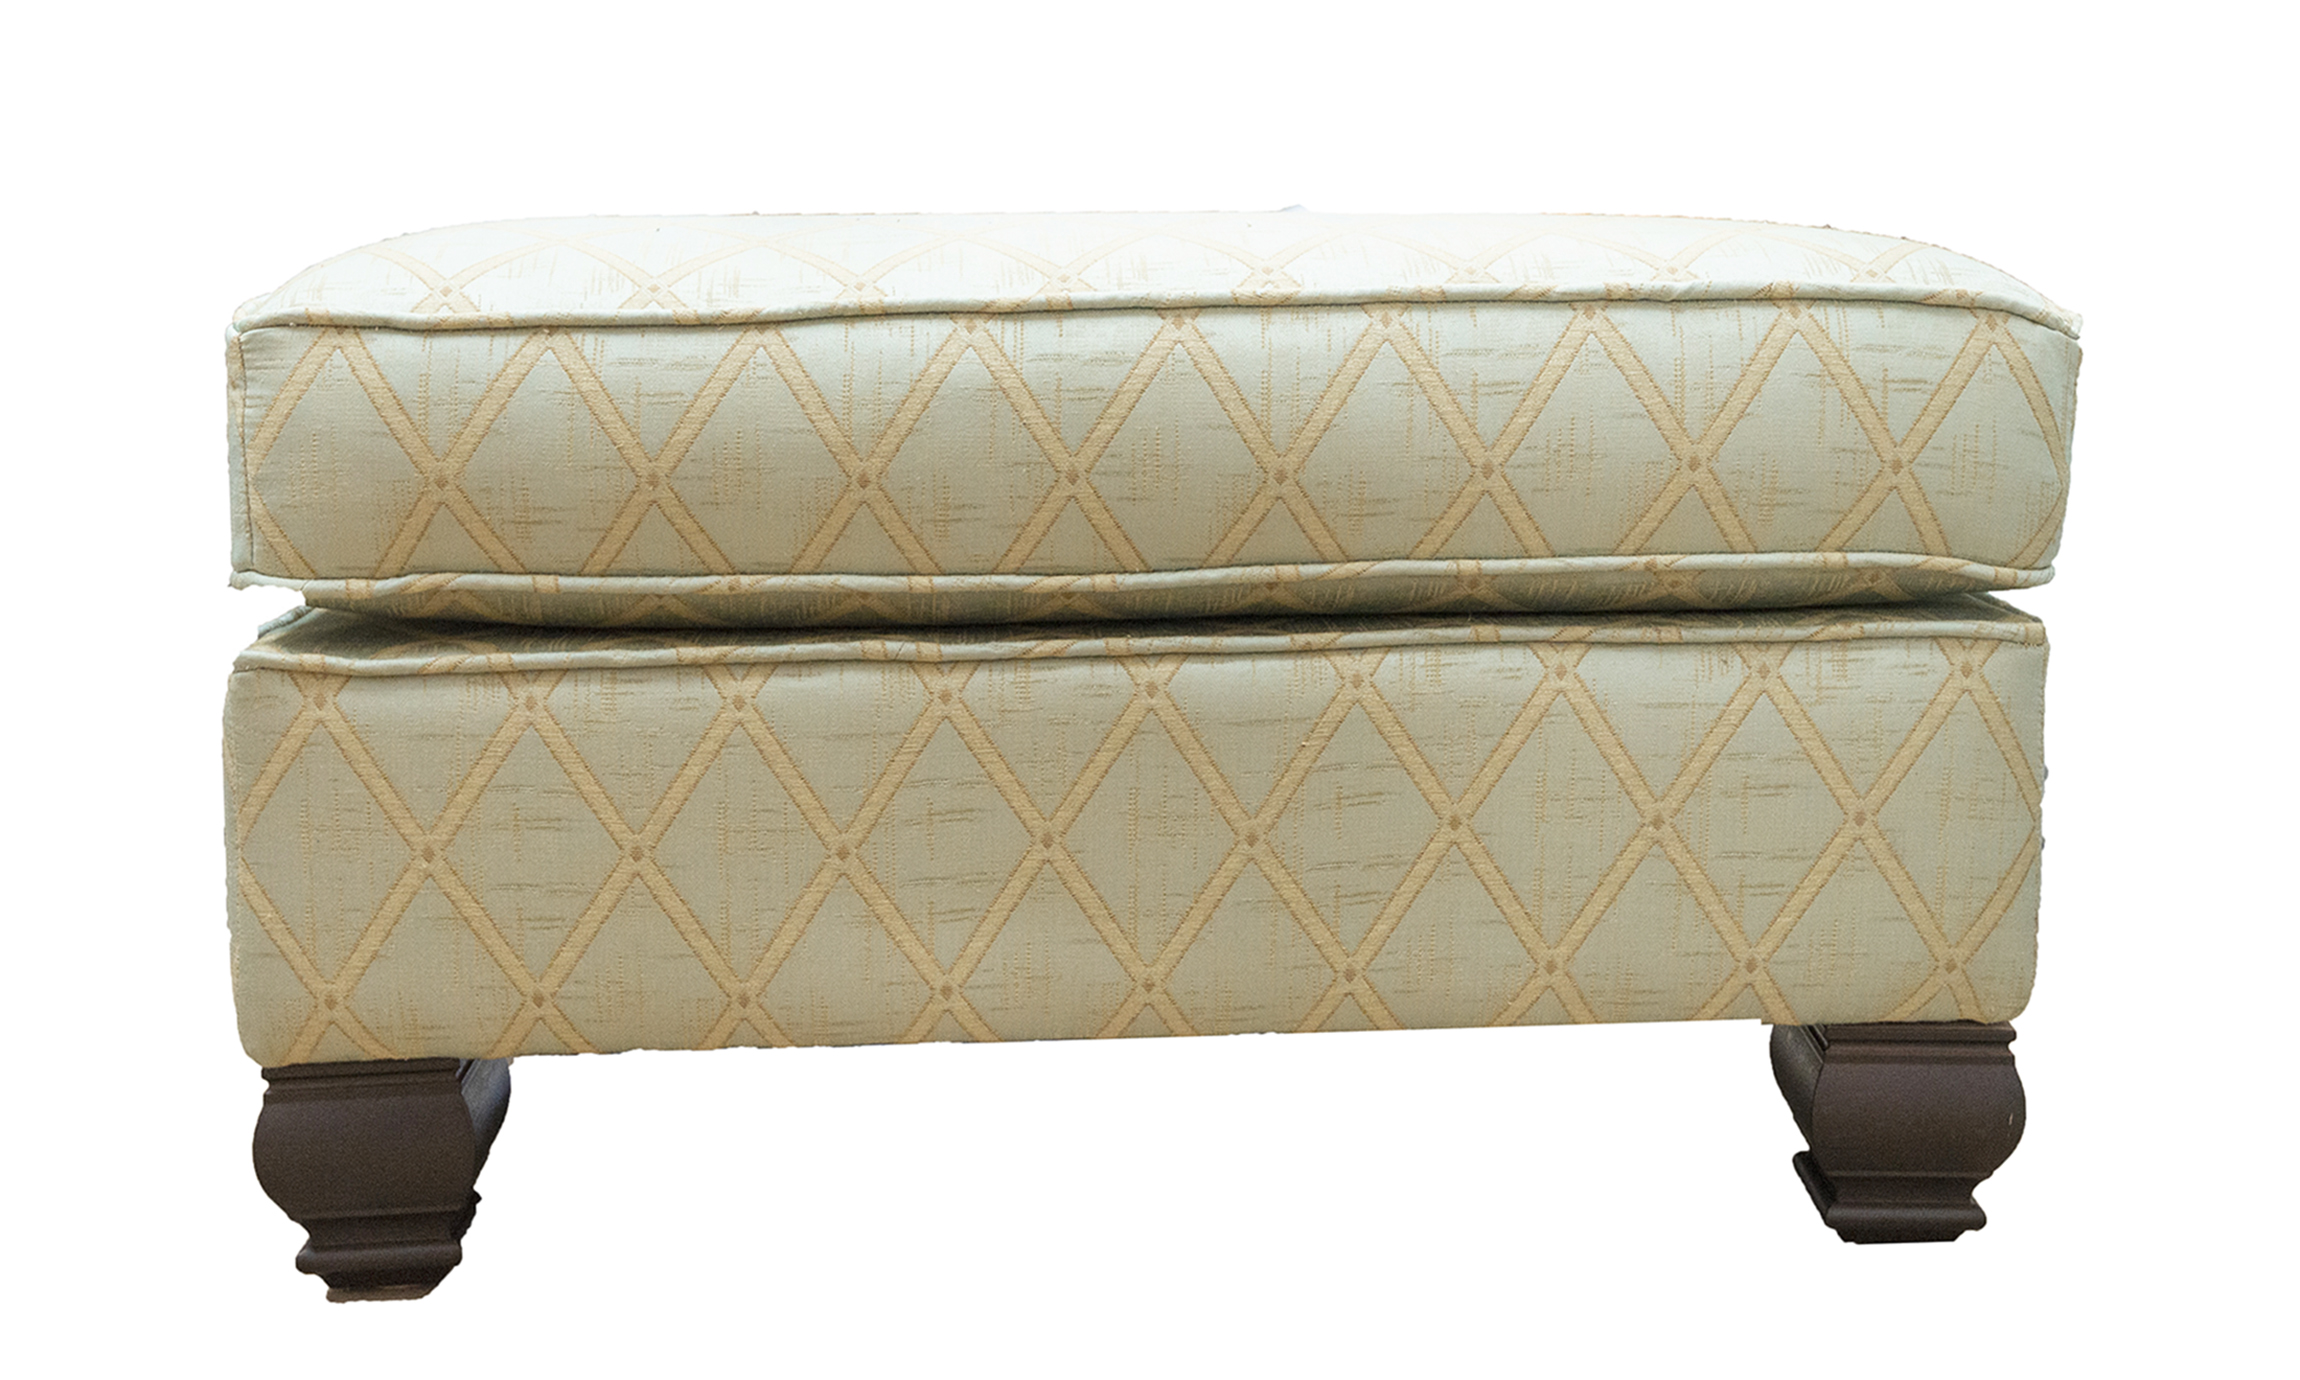 Grenoble Footstool in a clearance Fabric